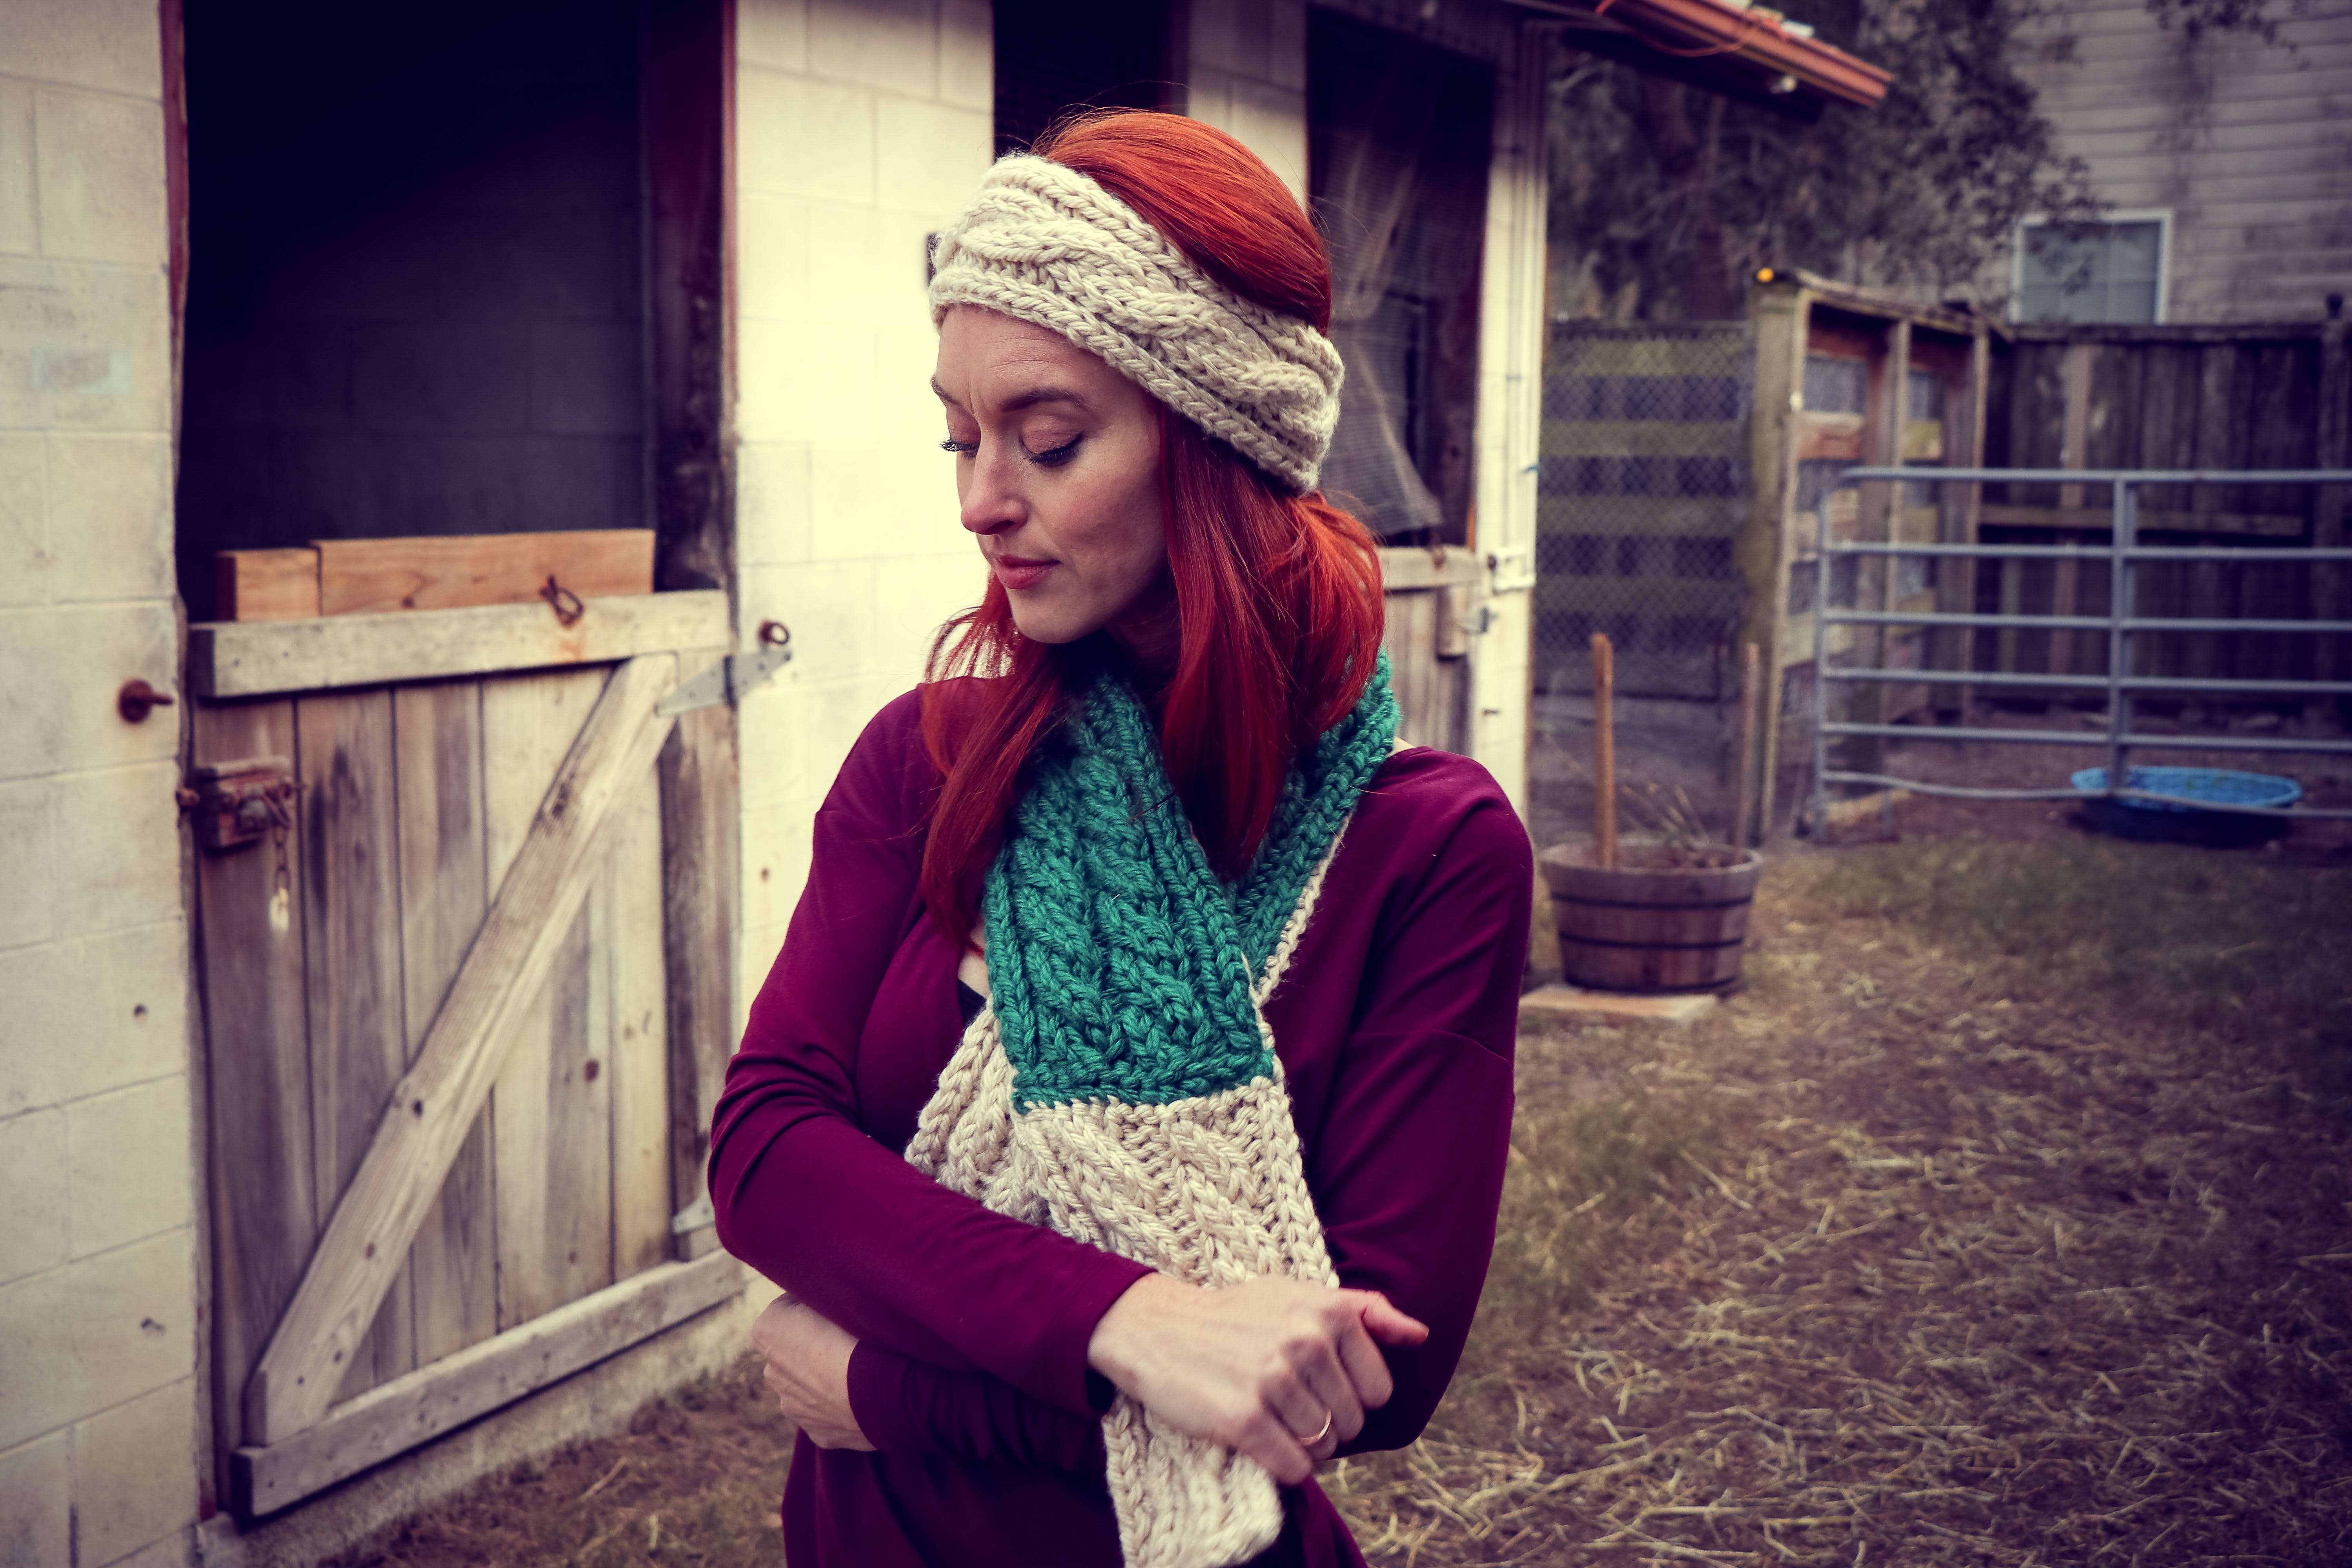 Woman in Purple Sweatshirt Wearing Knitted Beanie and Scarf